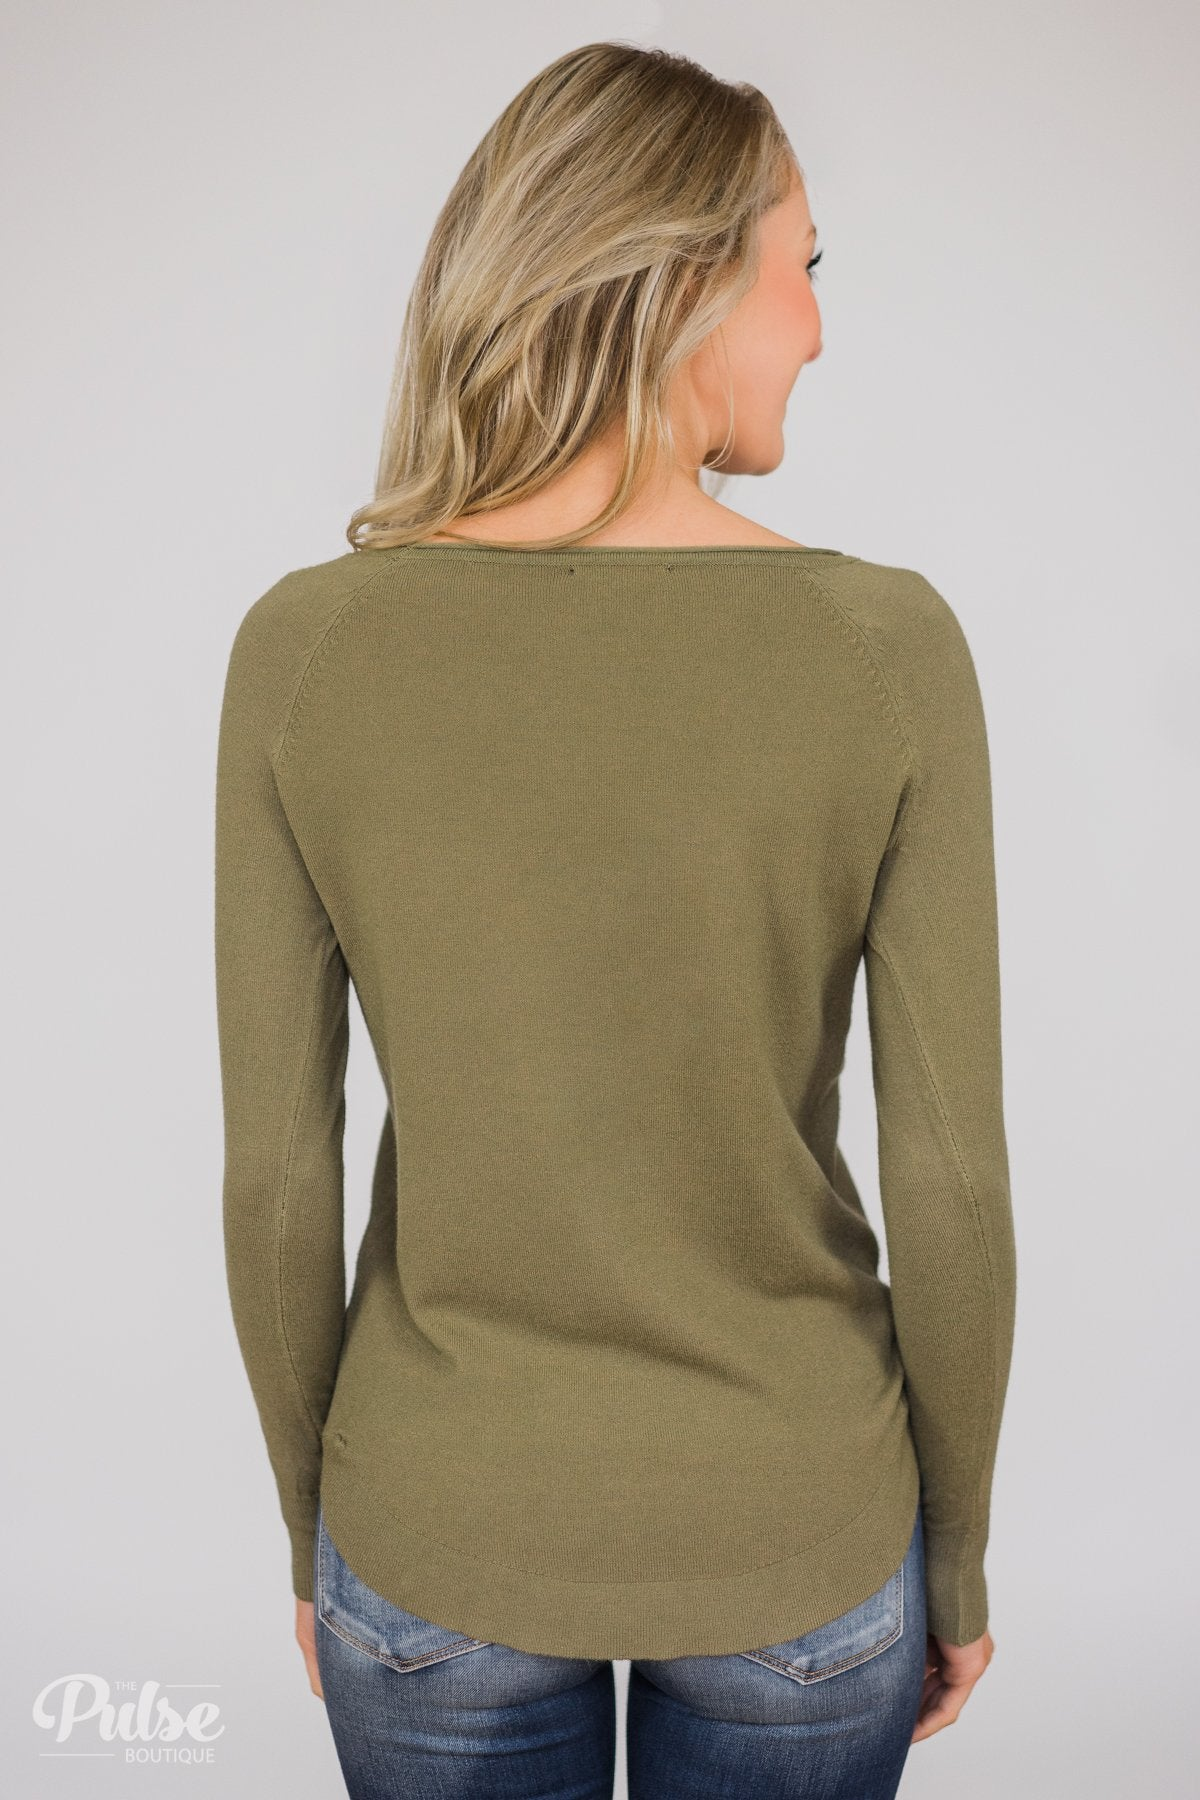 Butter Me Up Sweater - Olive